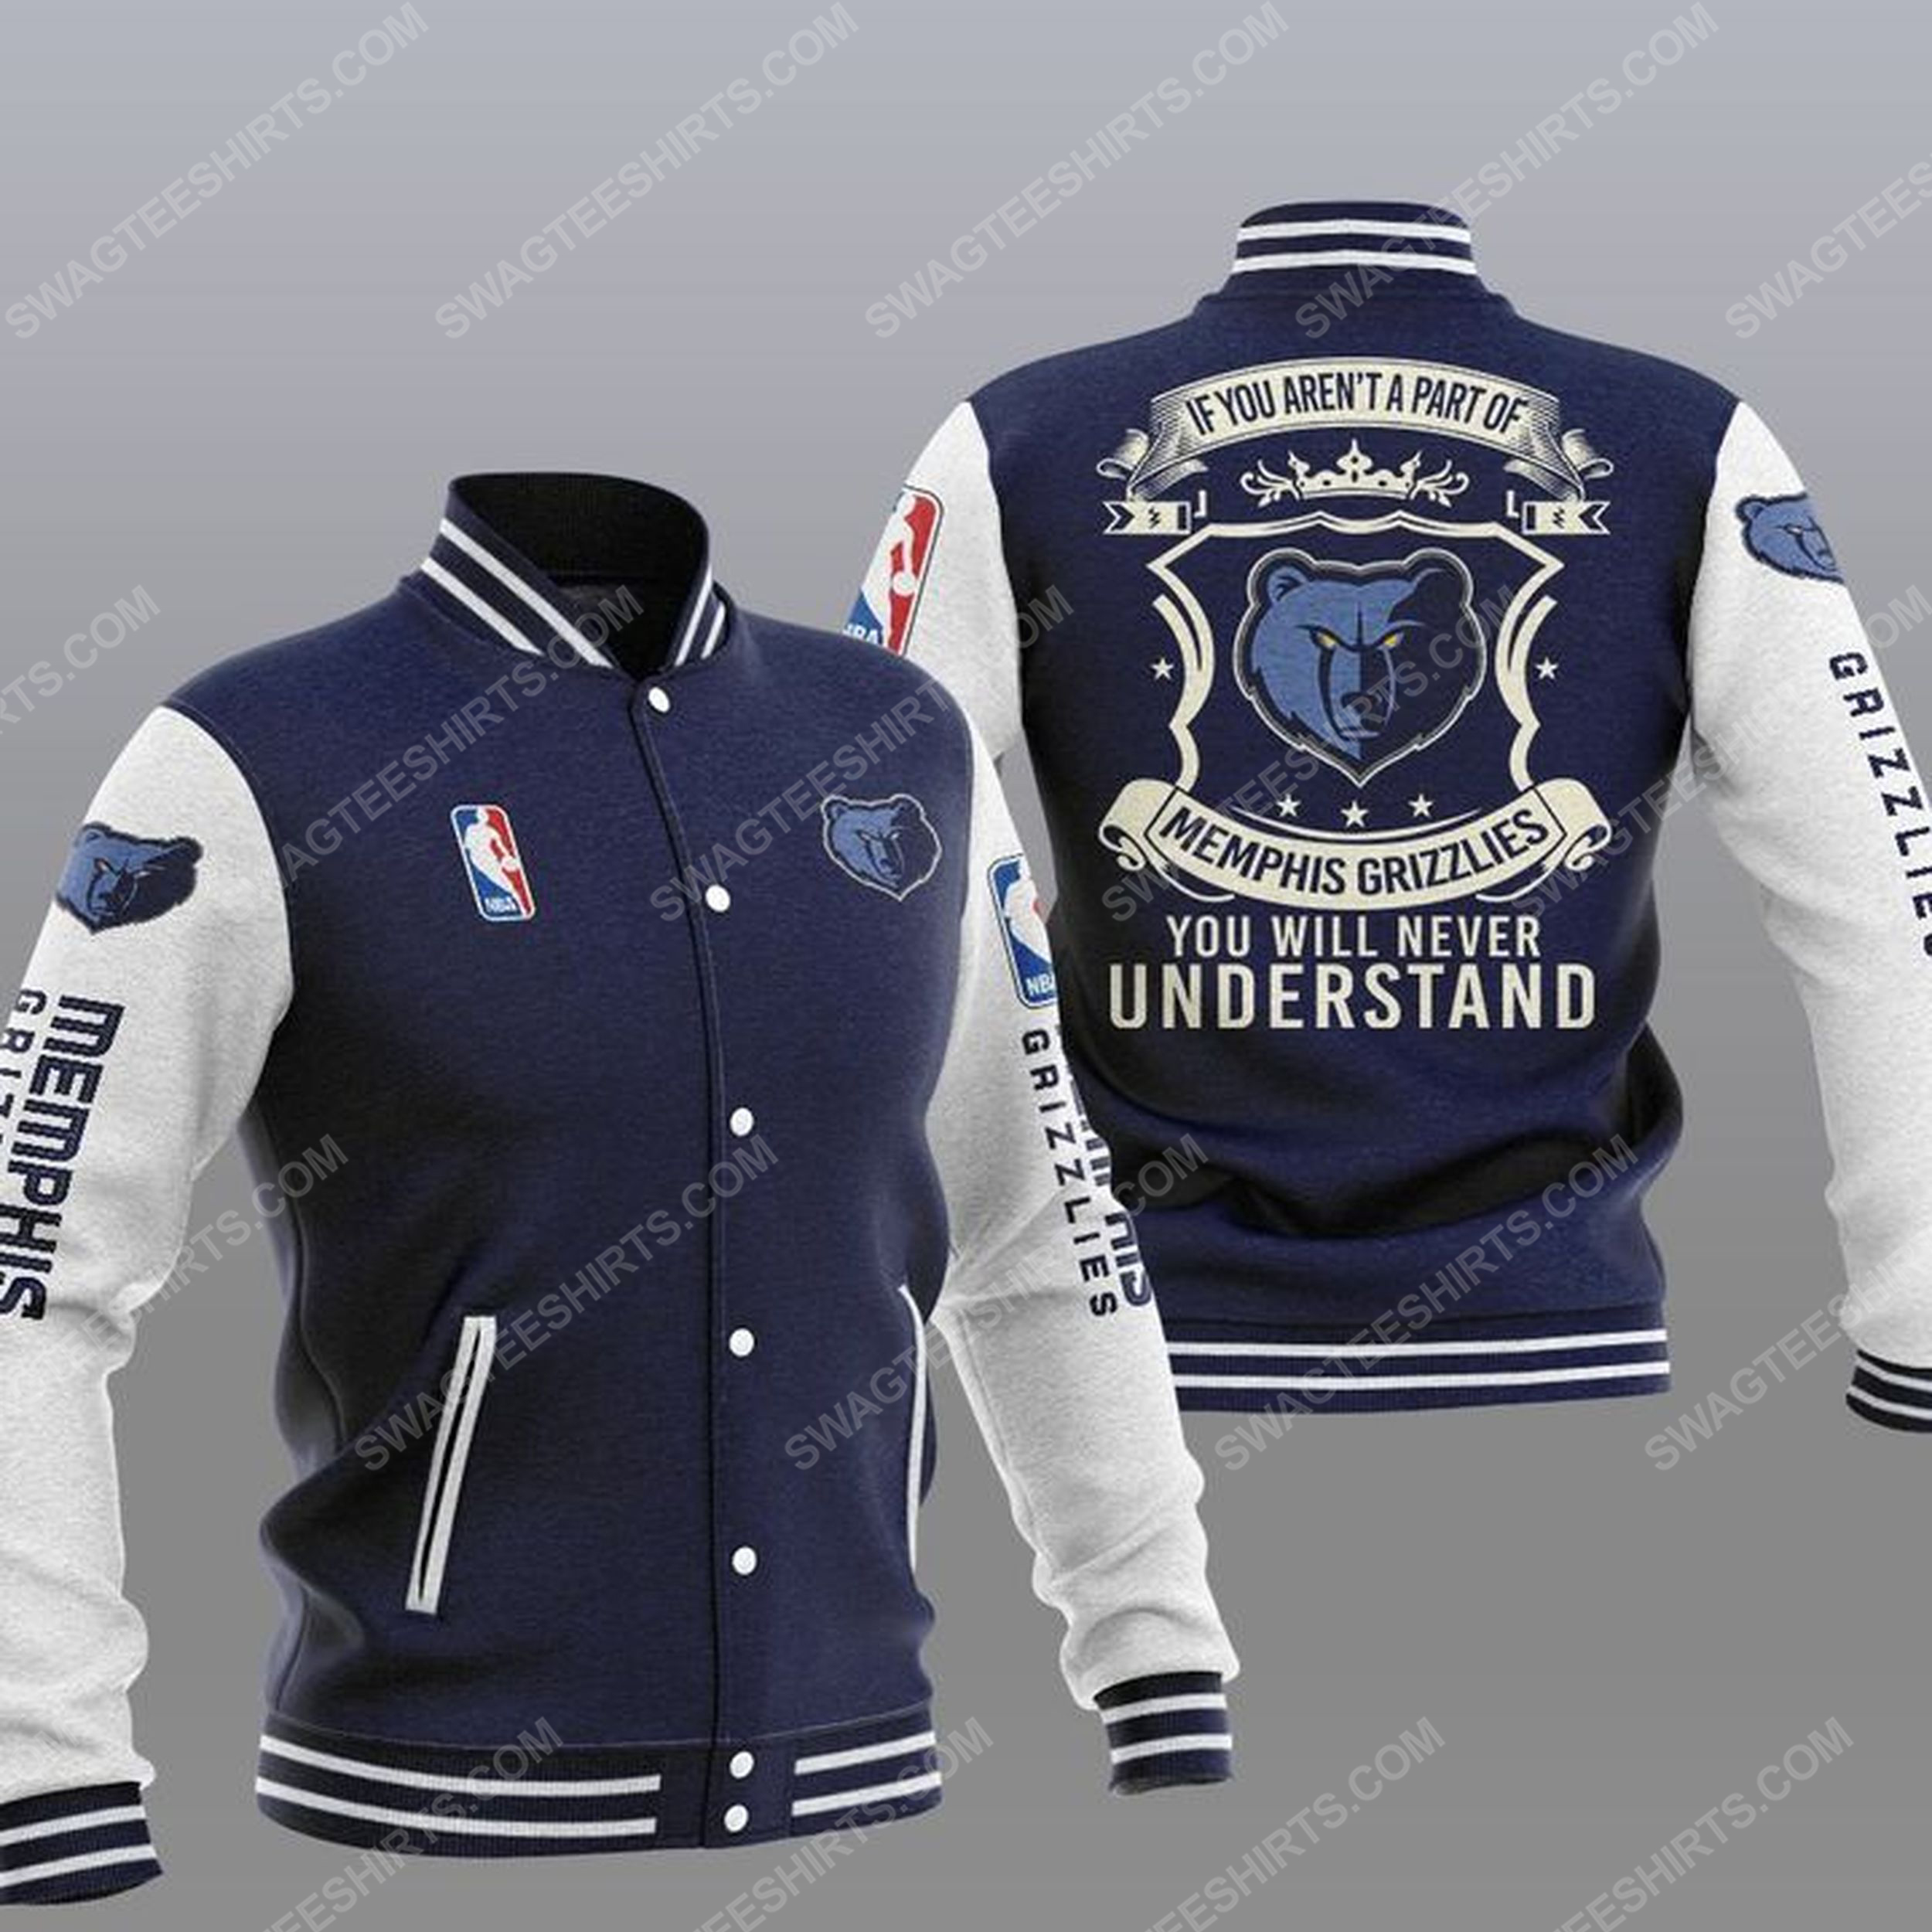 You will never understand memphis grizzlies all over print baseball jacket - navy 1